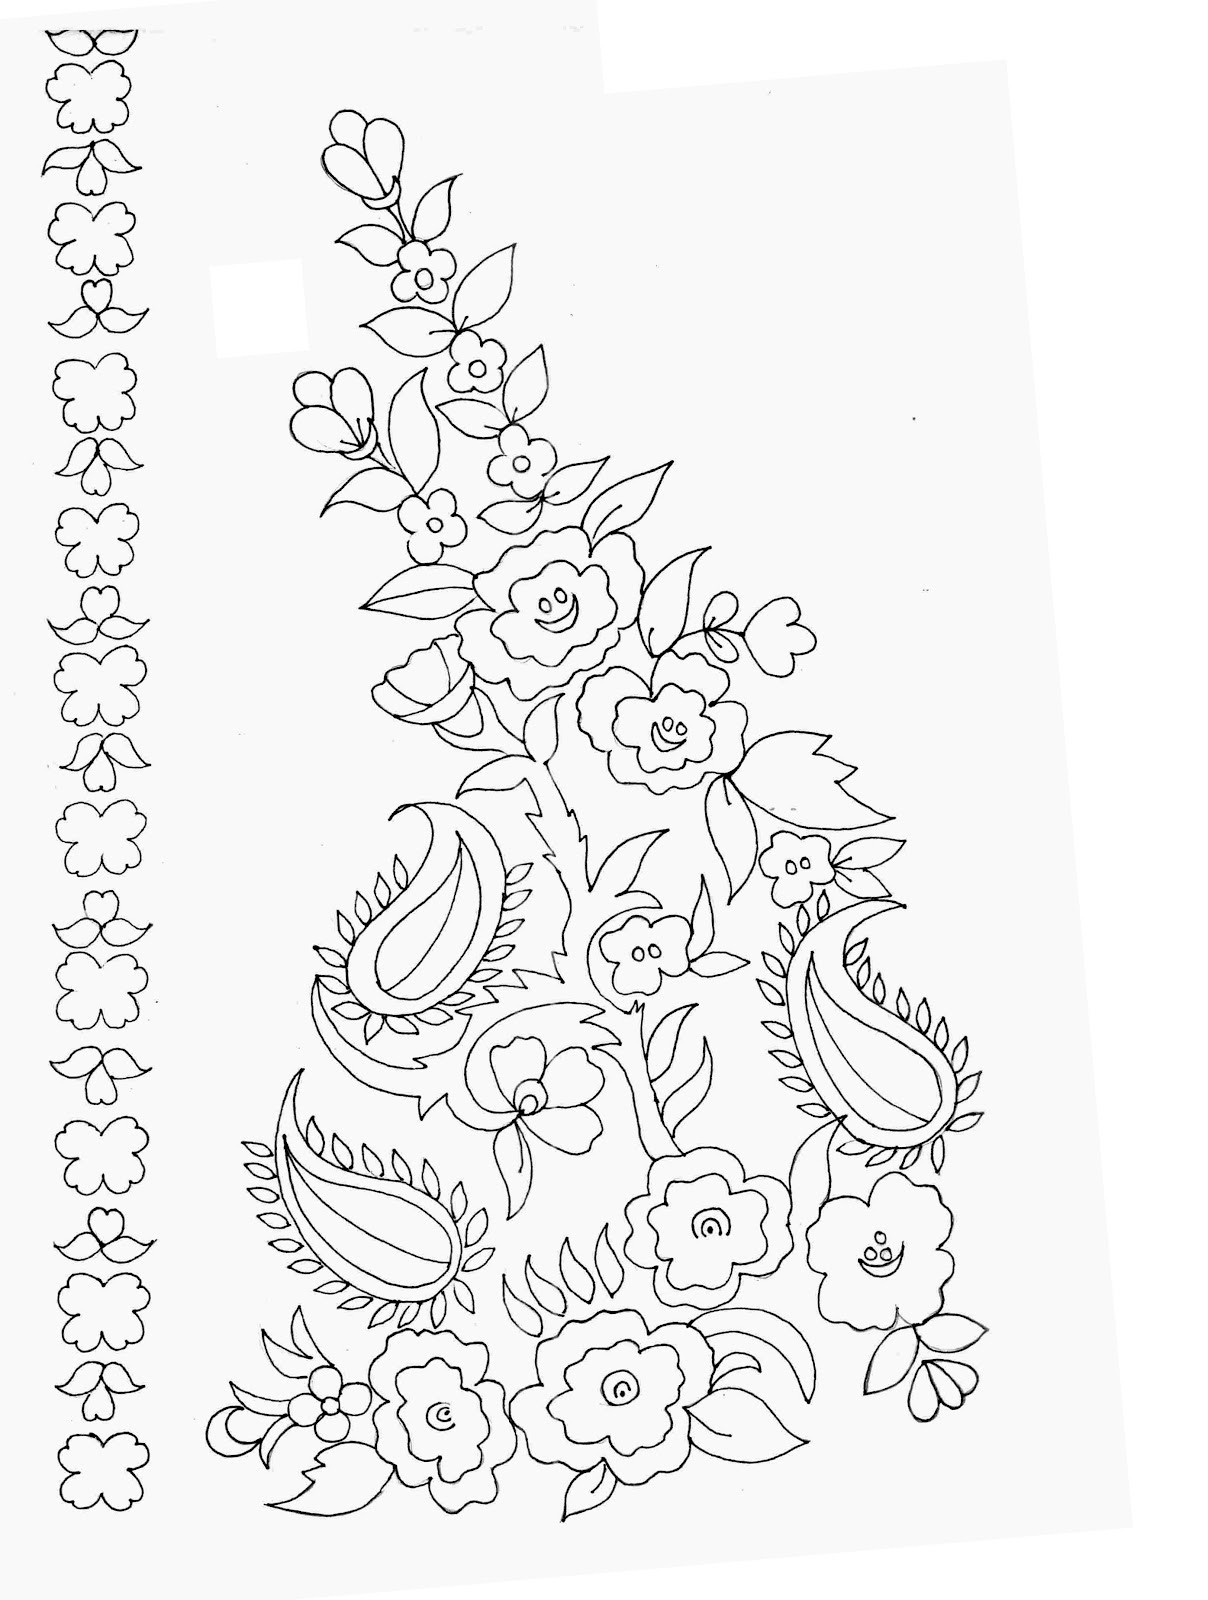 22 simple drawing embroidery patterns makaroka embdesigntube embroidery sketches shared by sarika agarwal bankloansurffo Gallery